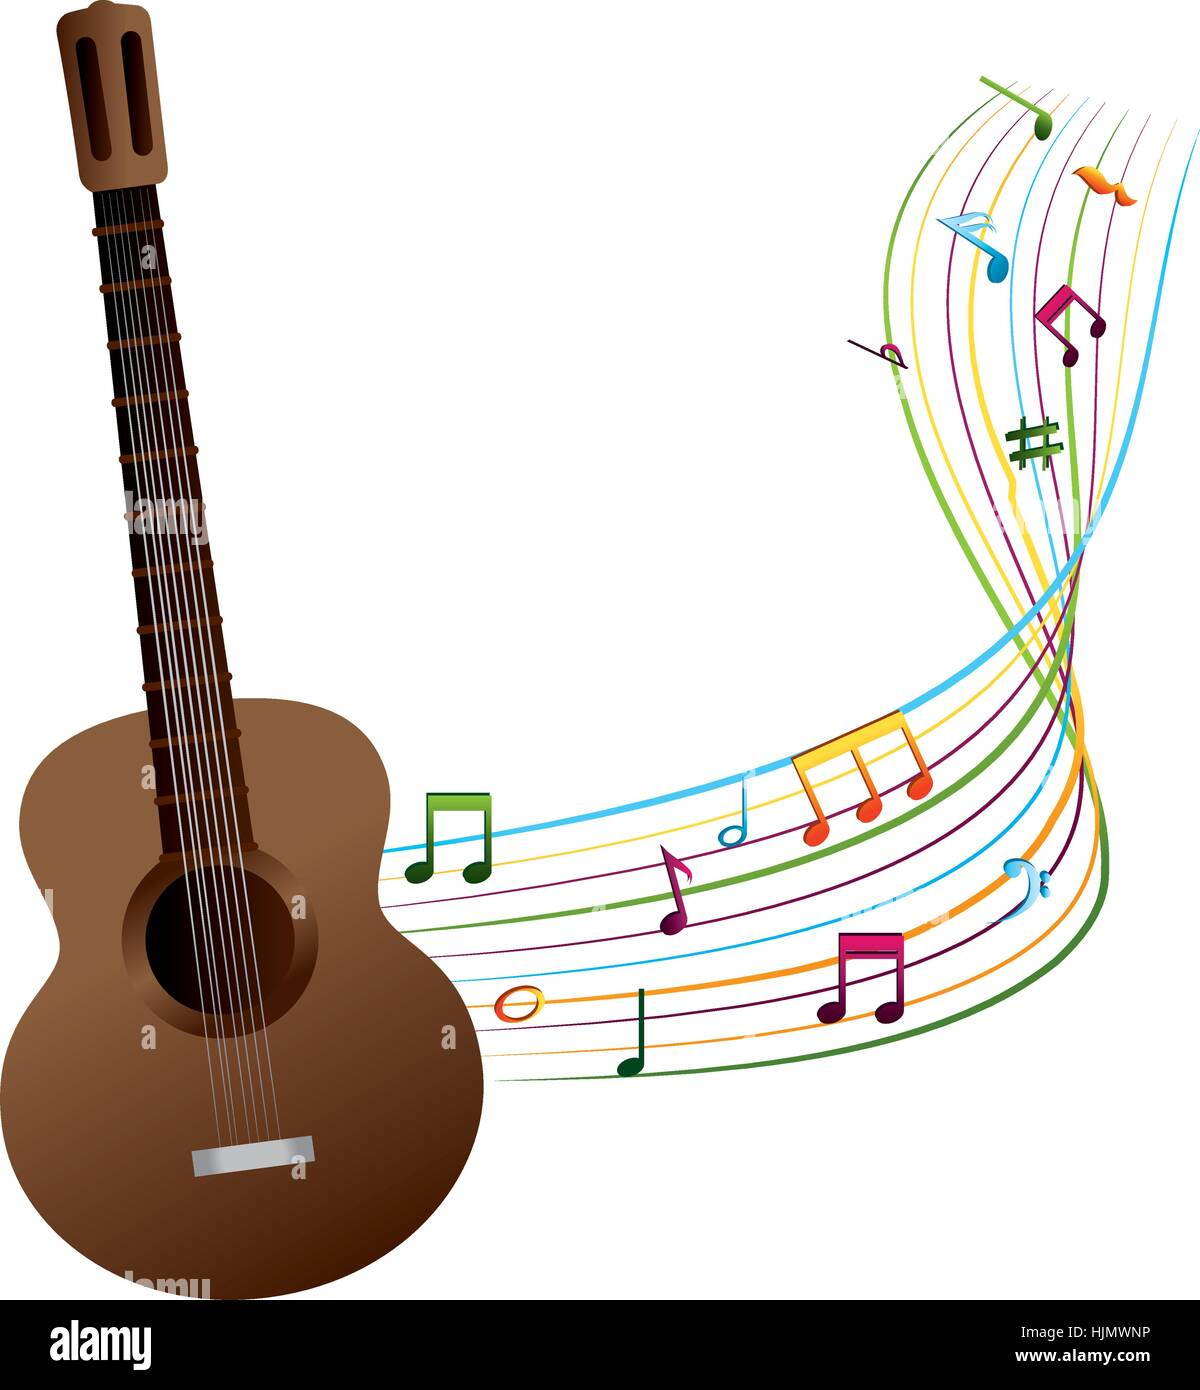 hight resolution of acoustic guitar with musical notes vector illustration design